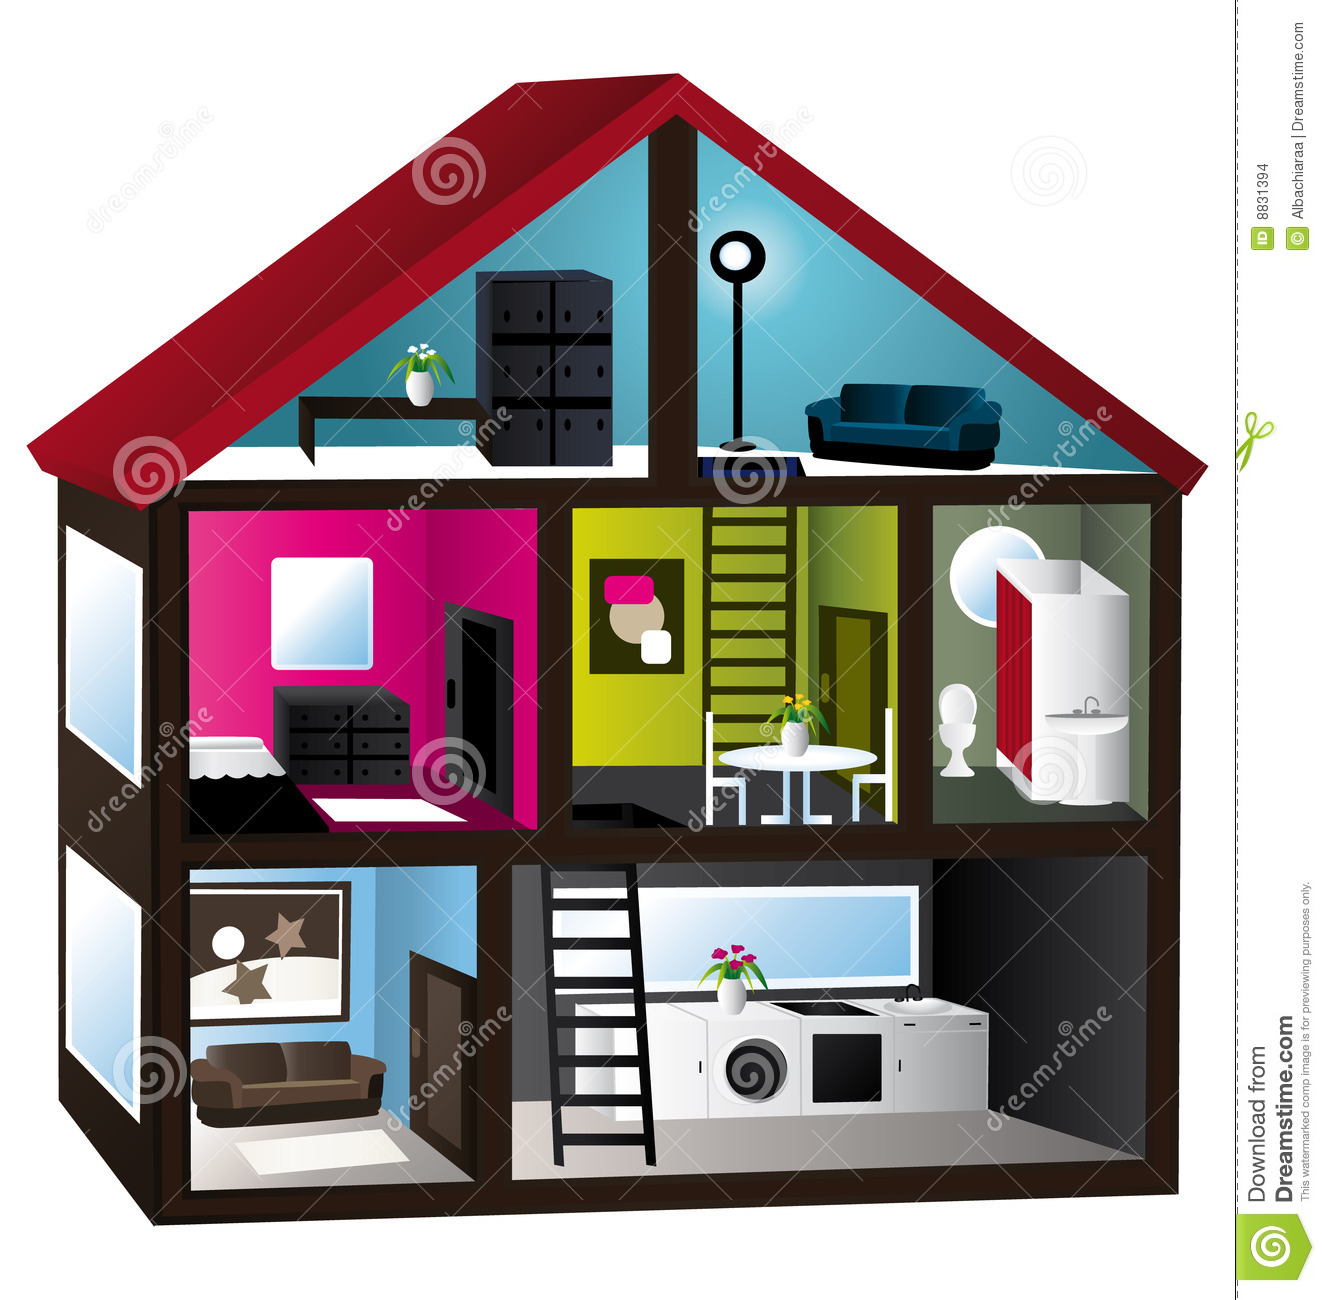 house side view clipart - photo #12